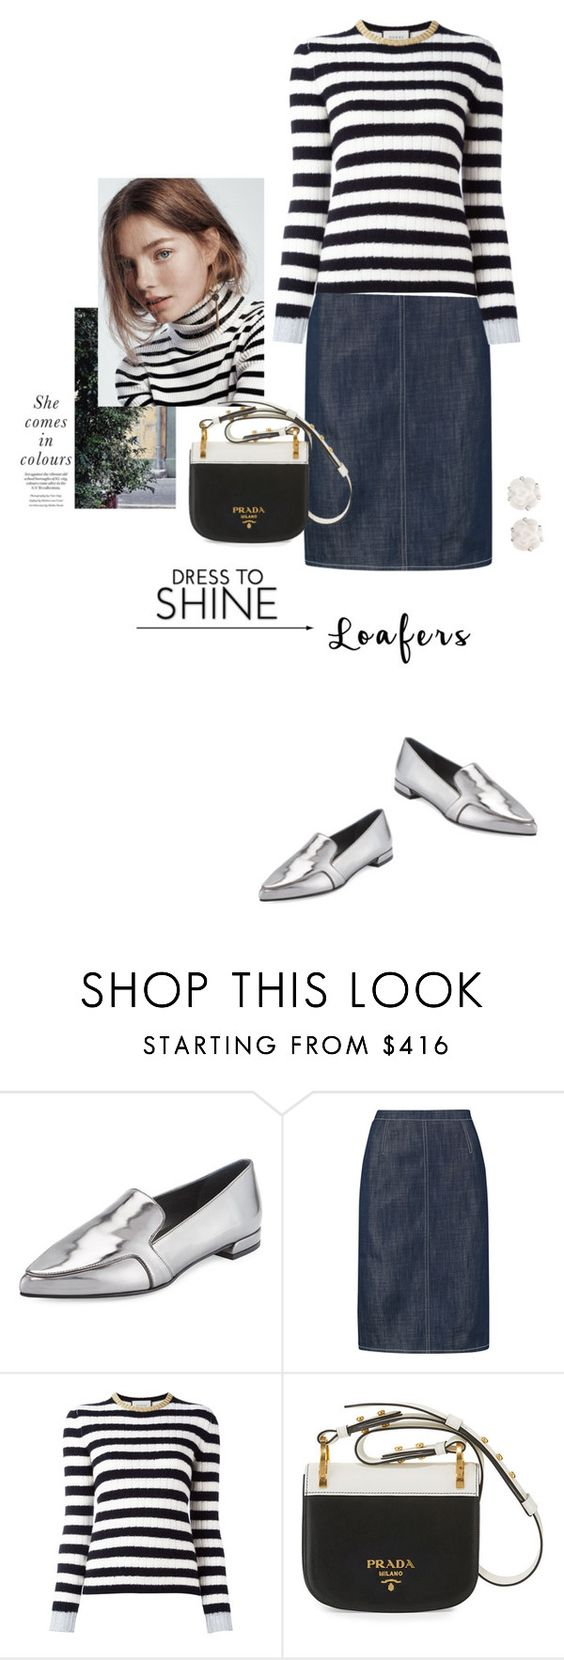 """""""Fall Footwear Trend:Shiny Loafers"""" by yukotange ❤ liked on Polyvore featuring Stuart Weitzman, Nina Ricci, Gucci, Prada, Chanel, loafers, polyvoreeditorial and polyvorecontest"""